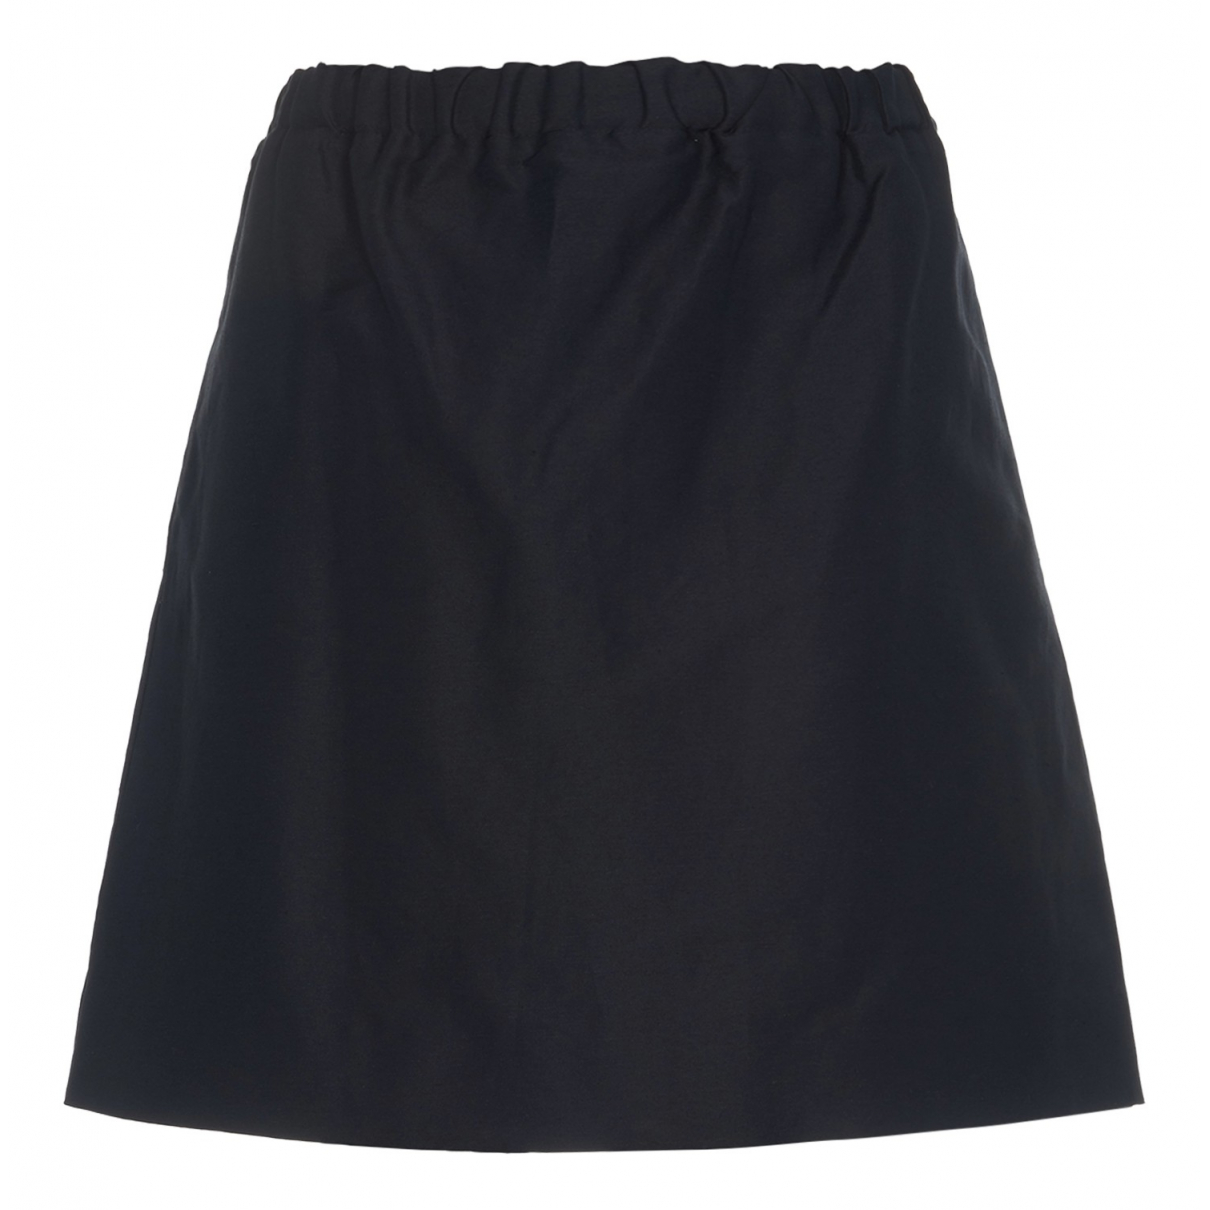 Marni N Blue Linen skirt for Women 12 UK